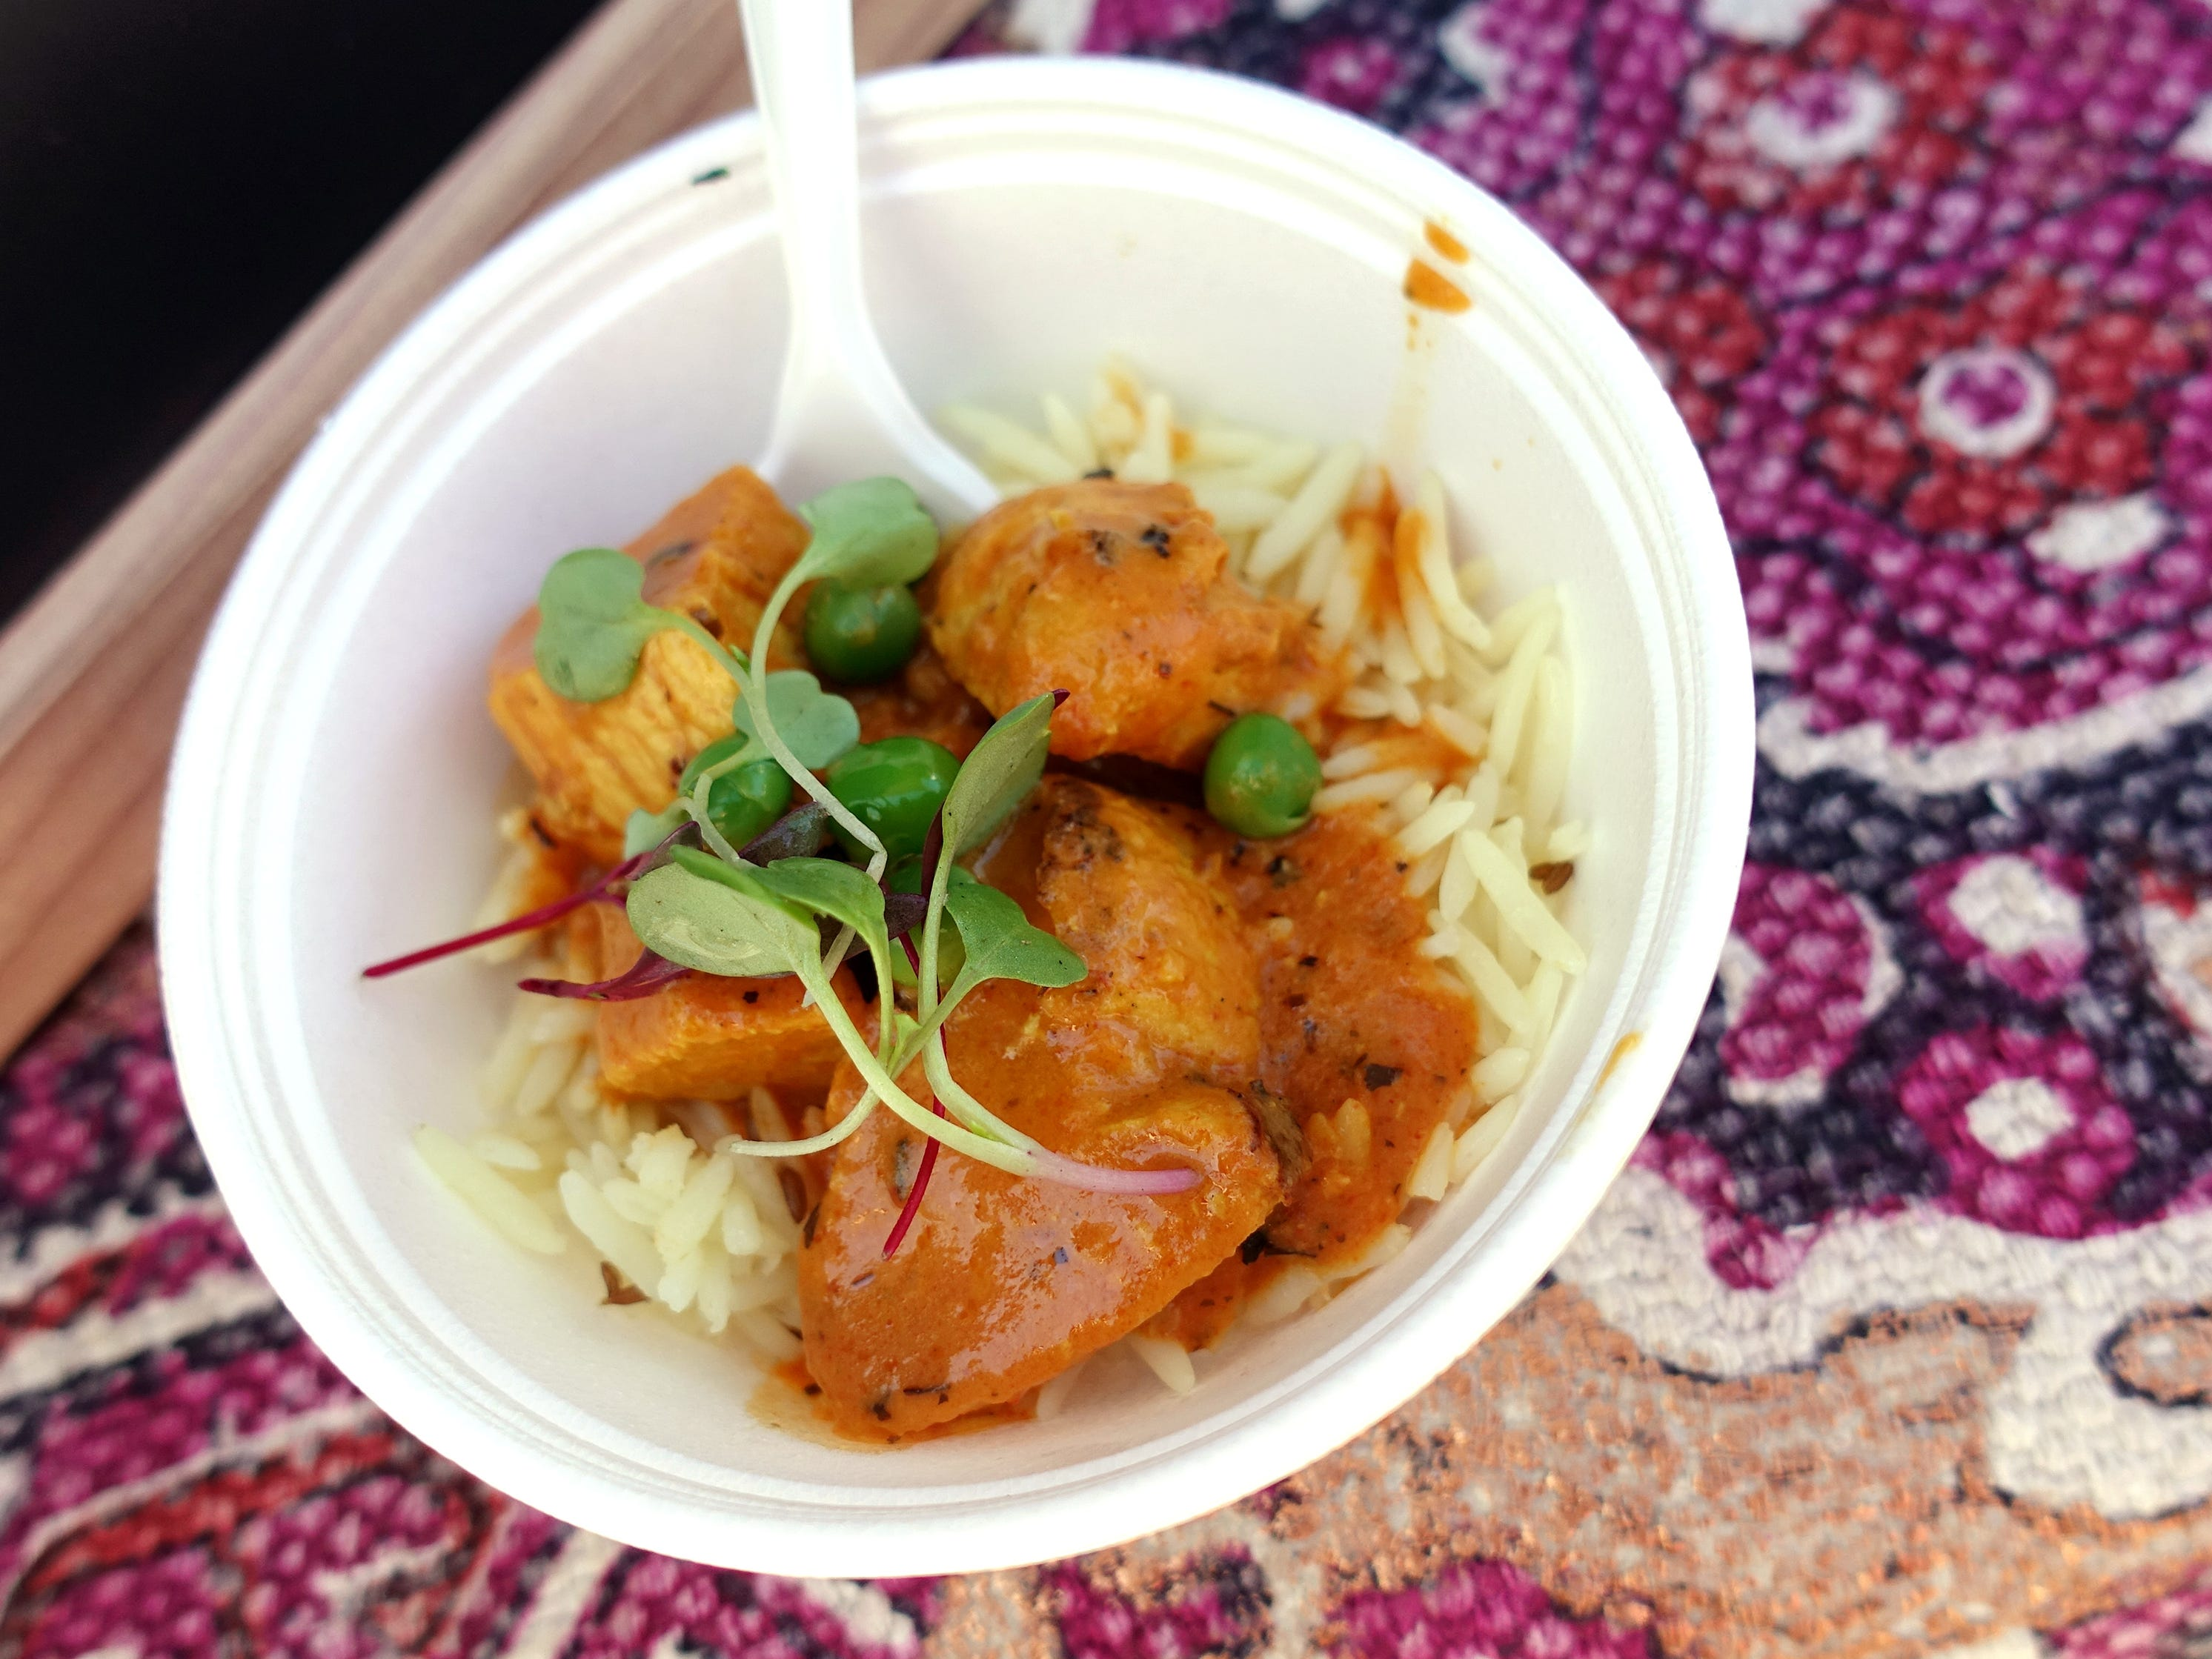 Chicken tikka masala from Marigold Maison at the Devour Culinary Classic at the Desert Botanical Garden in Phoenix.